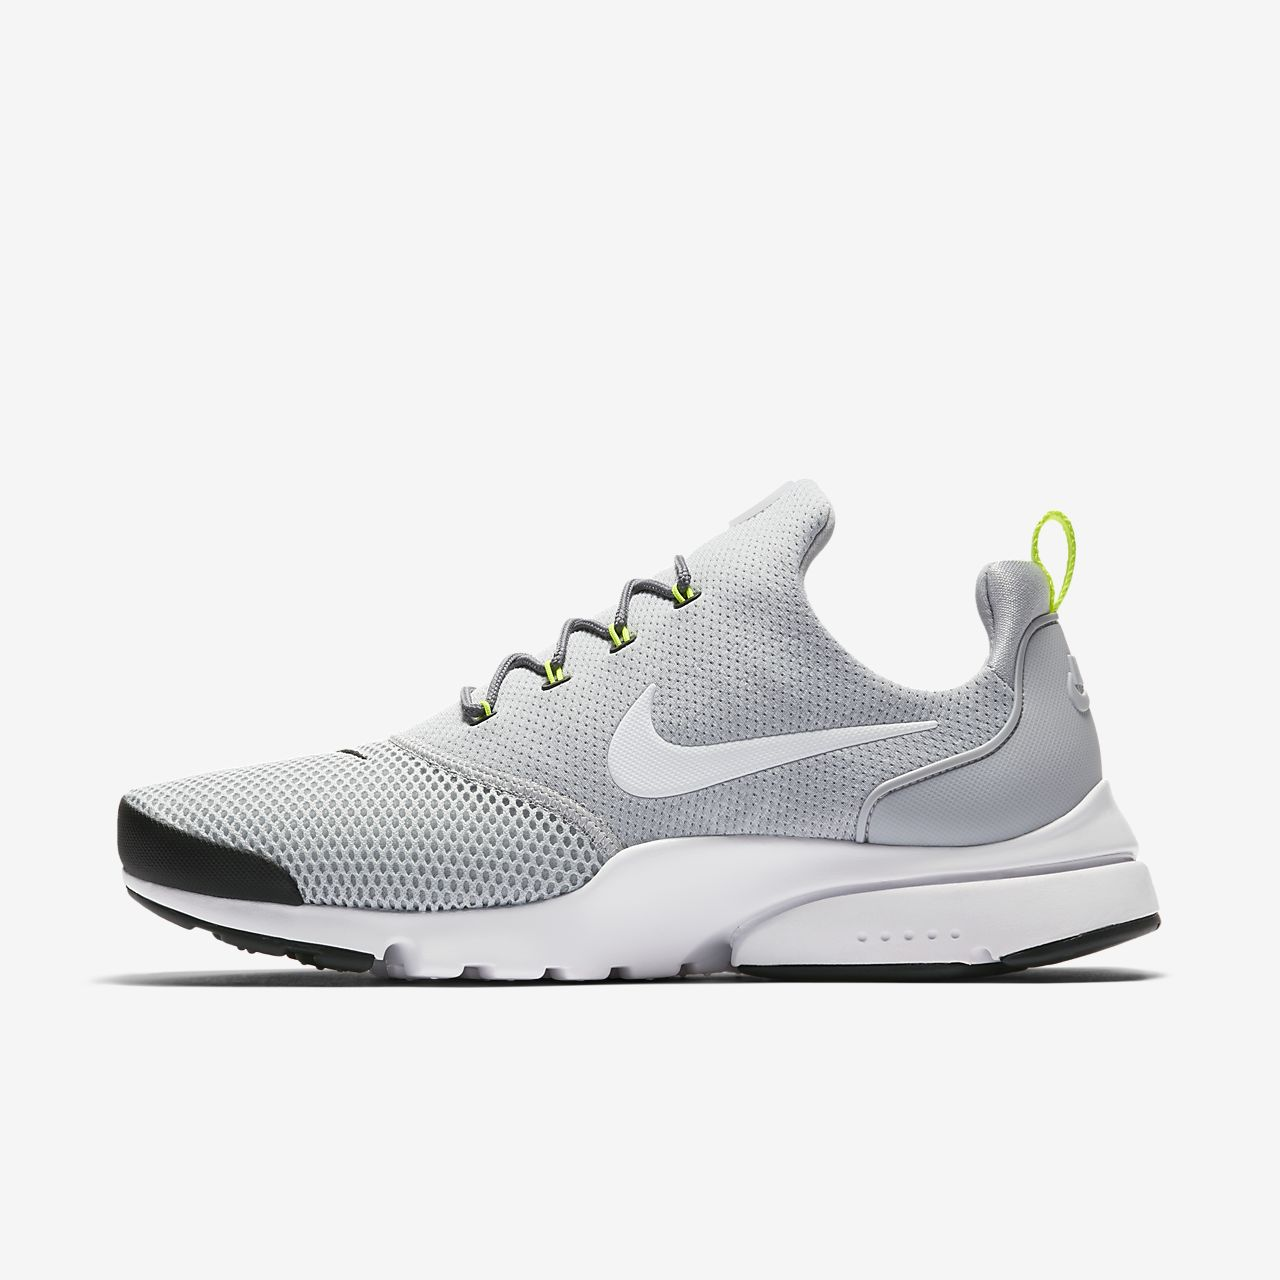 ... Nike Presto Fly Men's Shoe